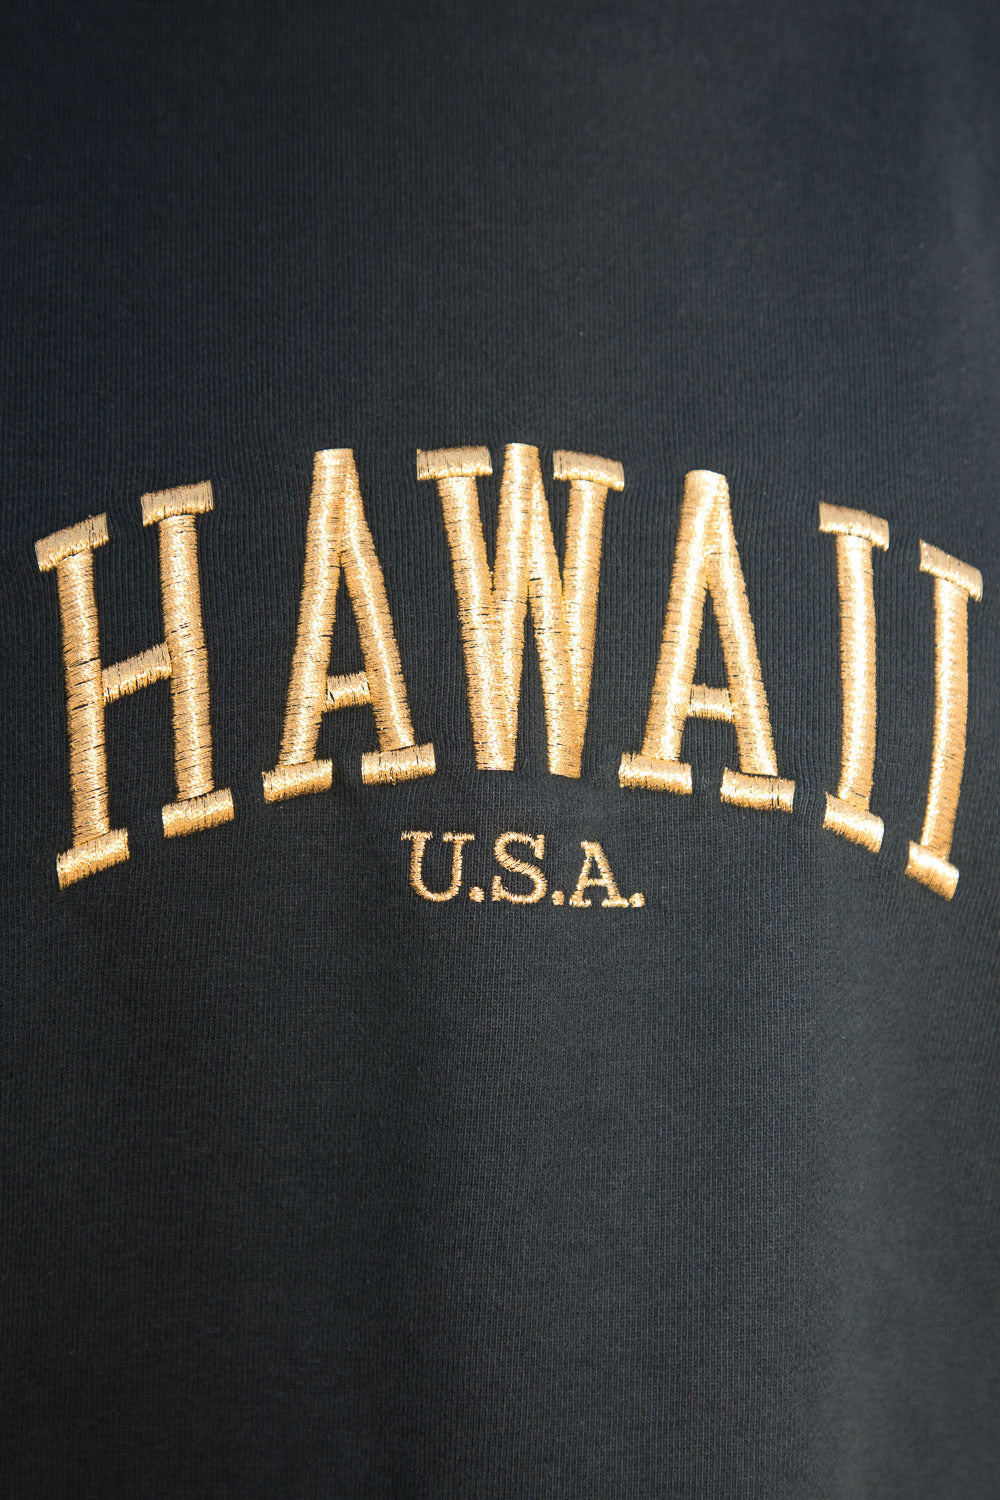 Hawaii Embroidered Sweatshirt